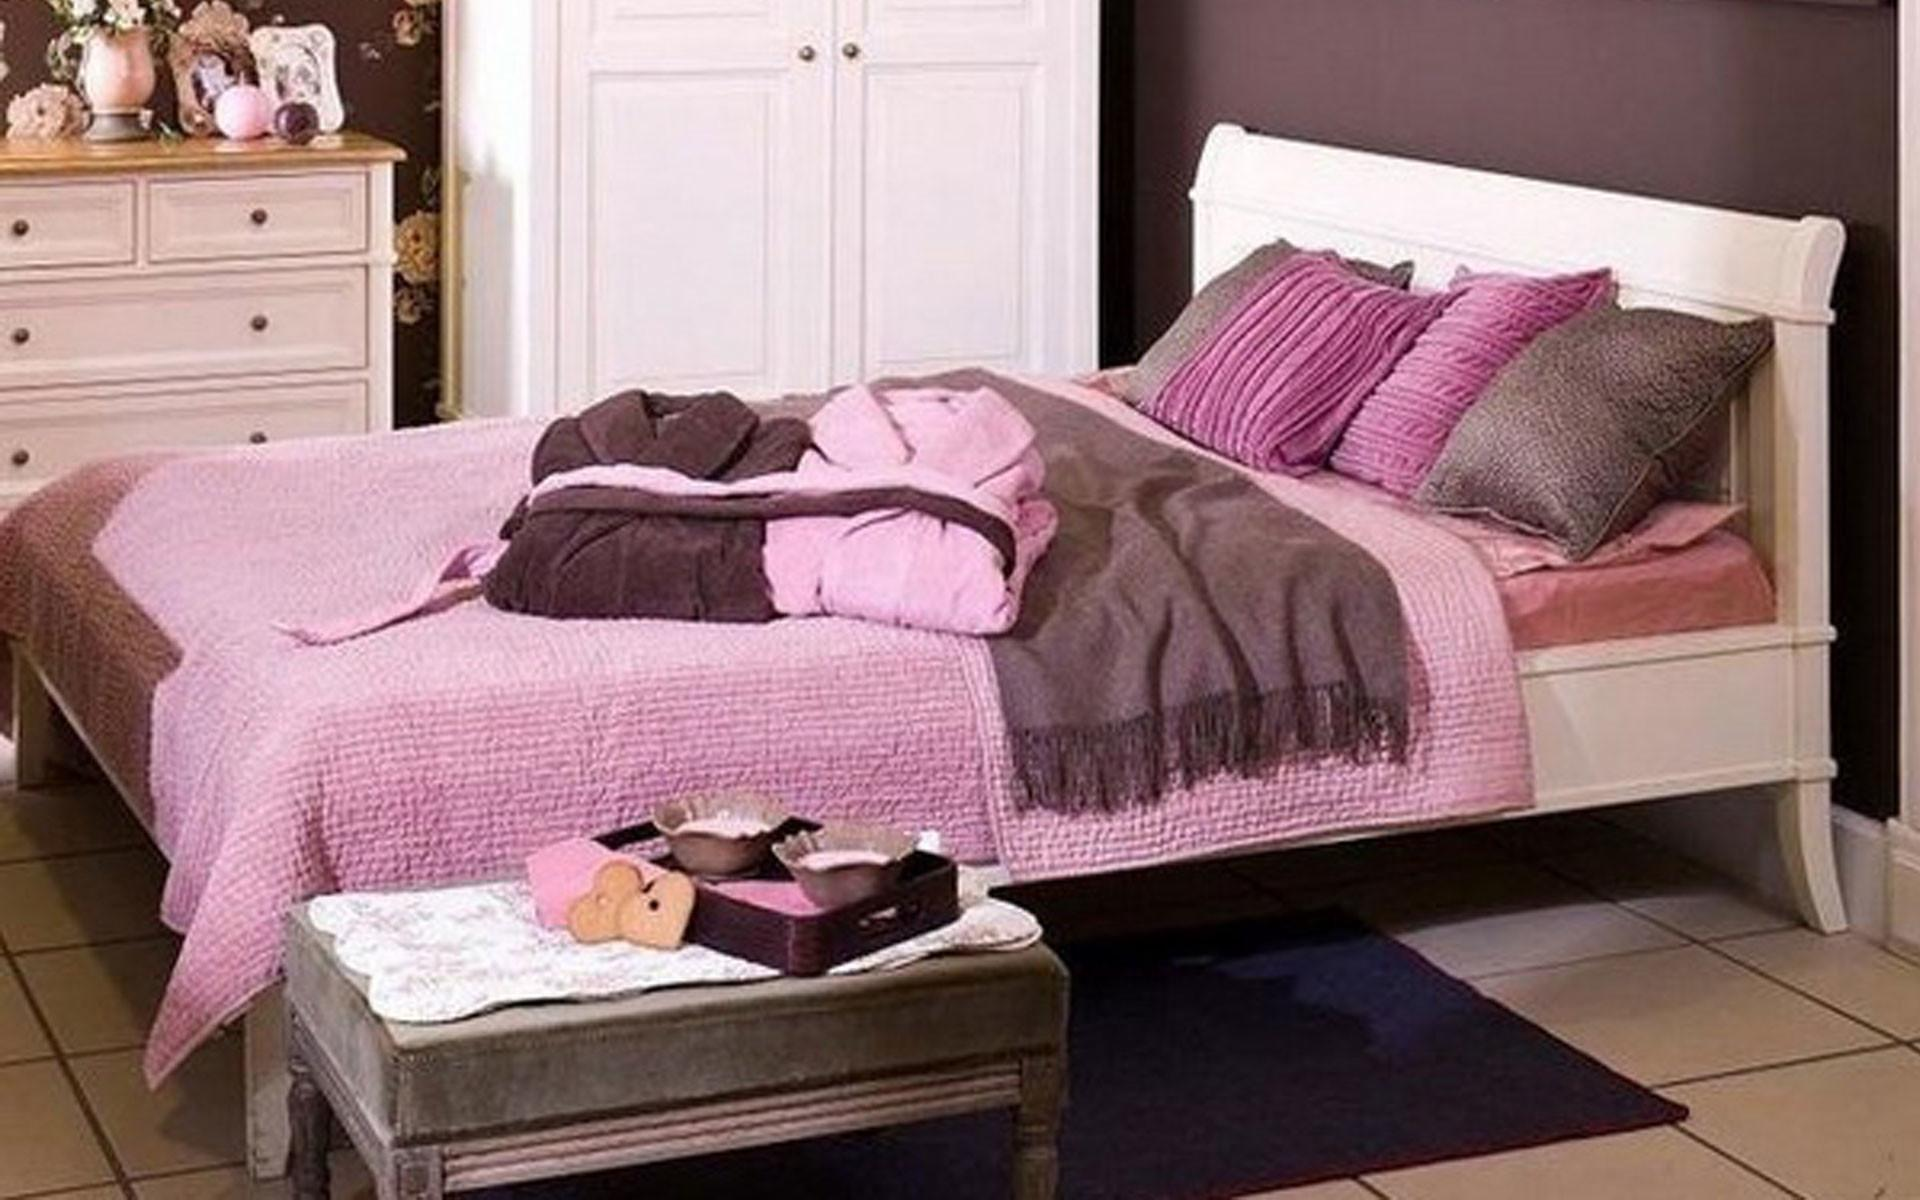 Home Decor Bedroom Comfy Knitted Cute Teen Design